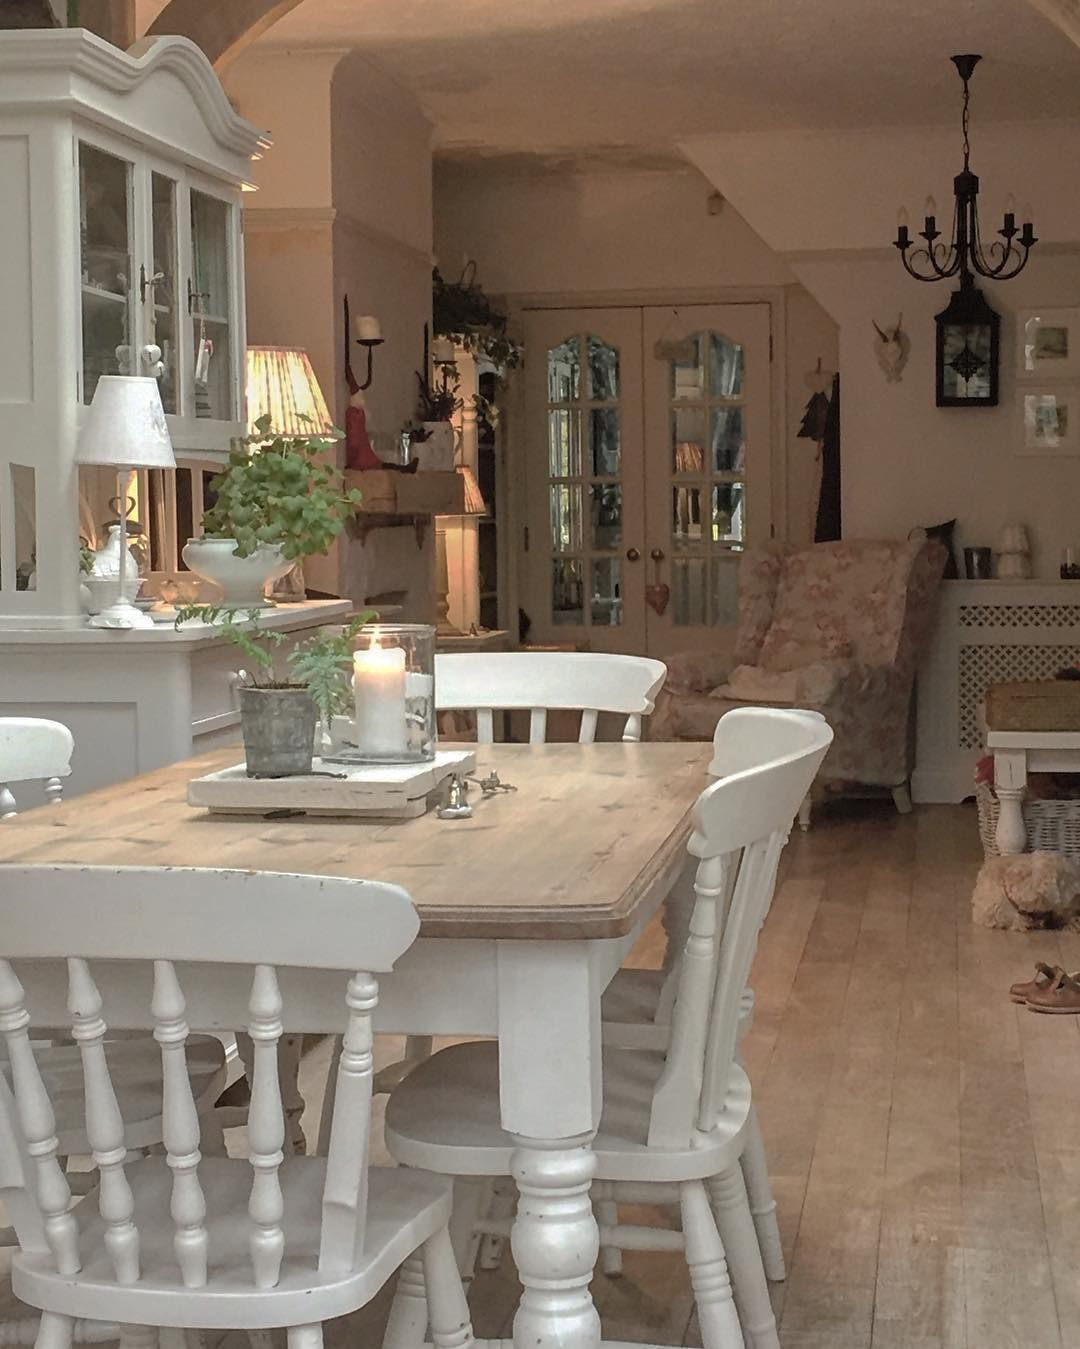 32 Stylish Dining Room Ideas To Impress Your Dinner Guests: 70+ Adorable Farmhouse Dining Room Ideas [Simply And